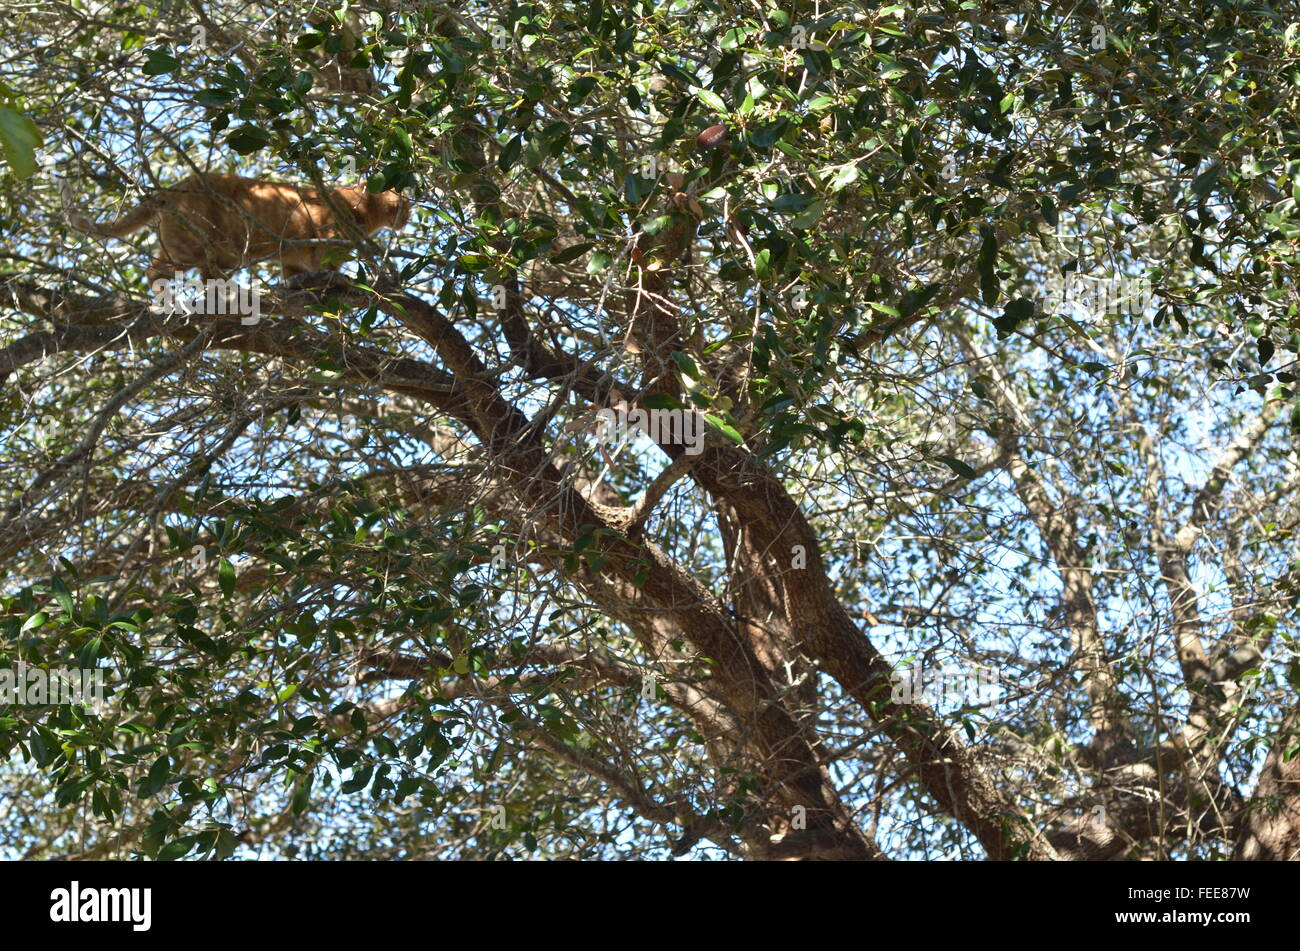 puzzle, tree, orange tabby, found, hunted, food, healthy, curious, attention, nature, blue skies, oak tree, question, - Stock Image